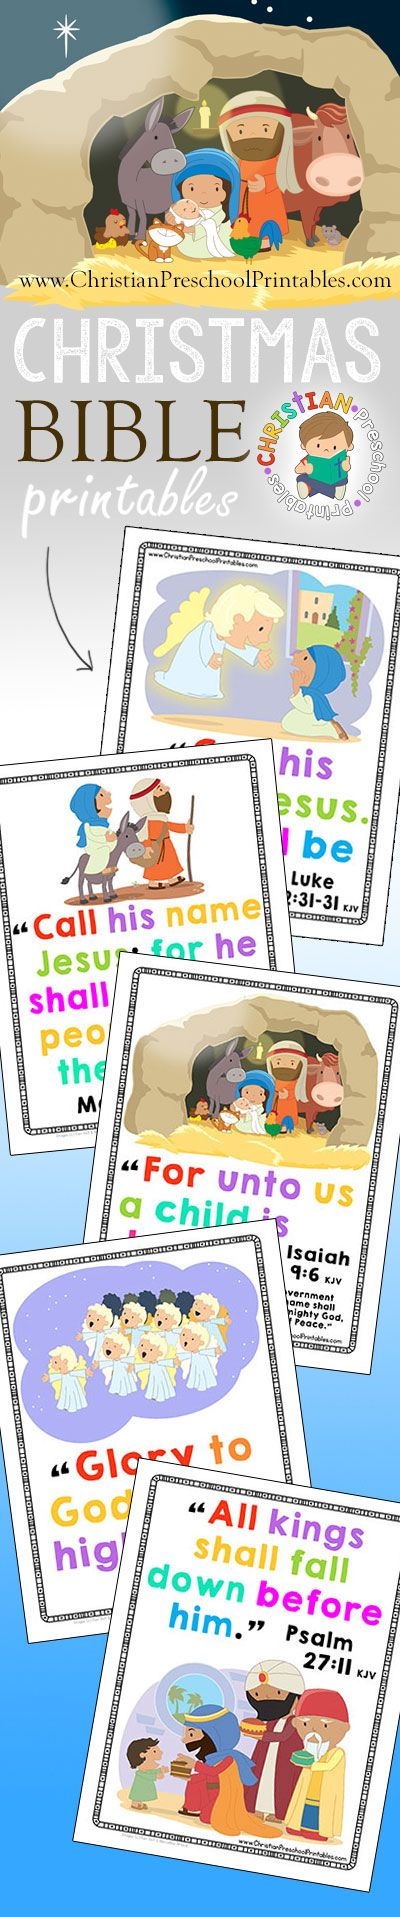 Free Christmas Bible Crafts, Christmas Activities, Christian Christmas Printables, Games, Puzzles, Lessons, Songs and more! Print what you need for your Christmas Bible Lessons. Free for Sunday School, Children's Ministry Groups, Outreach, Mission Trips and Homeschool! The free preschool printables we offer are perfect for your Christmas themed lesson planning and can easily be combined …